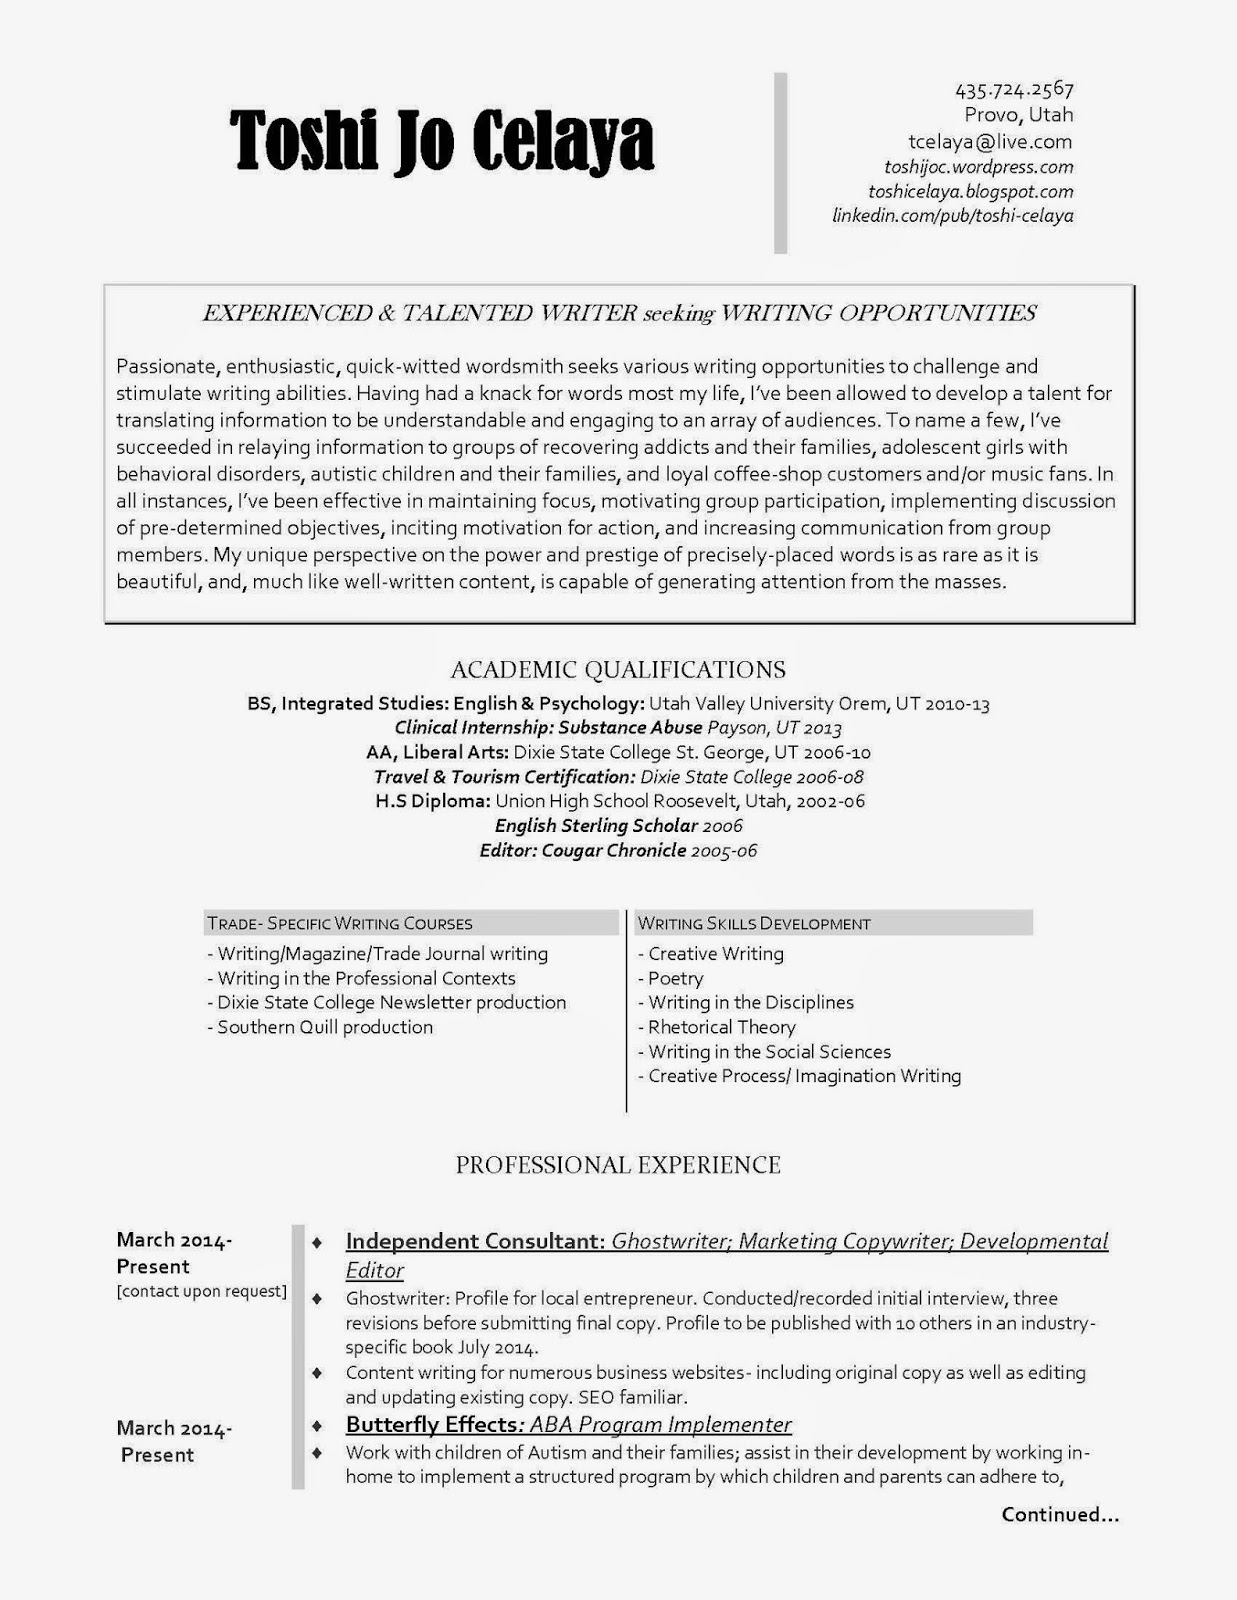 resume writing services ogden utah Resume writing services - ogden, ut resumestrong in ogden, ut is the premier local professional resume writing service our certified resume writers prepare.